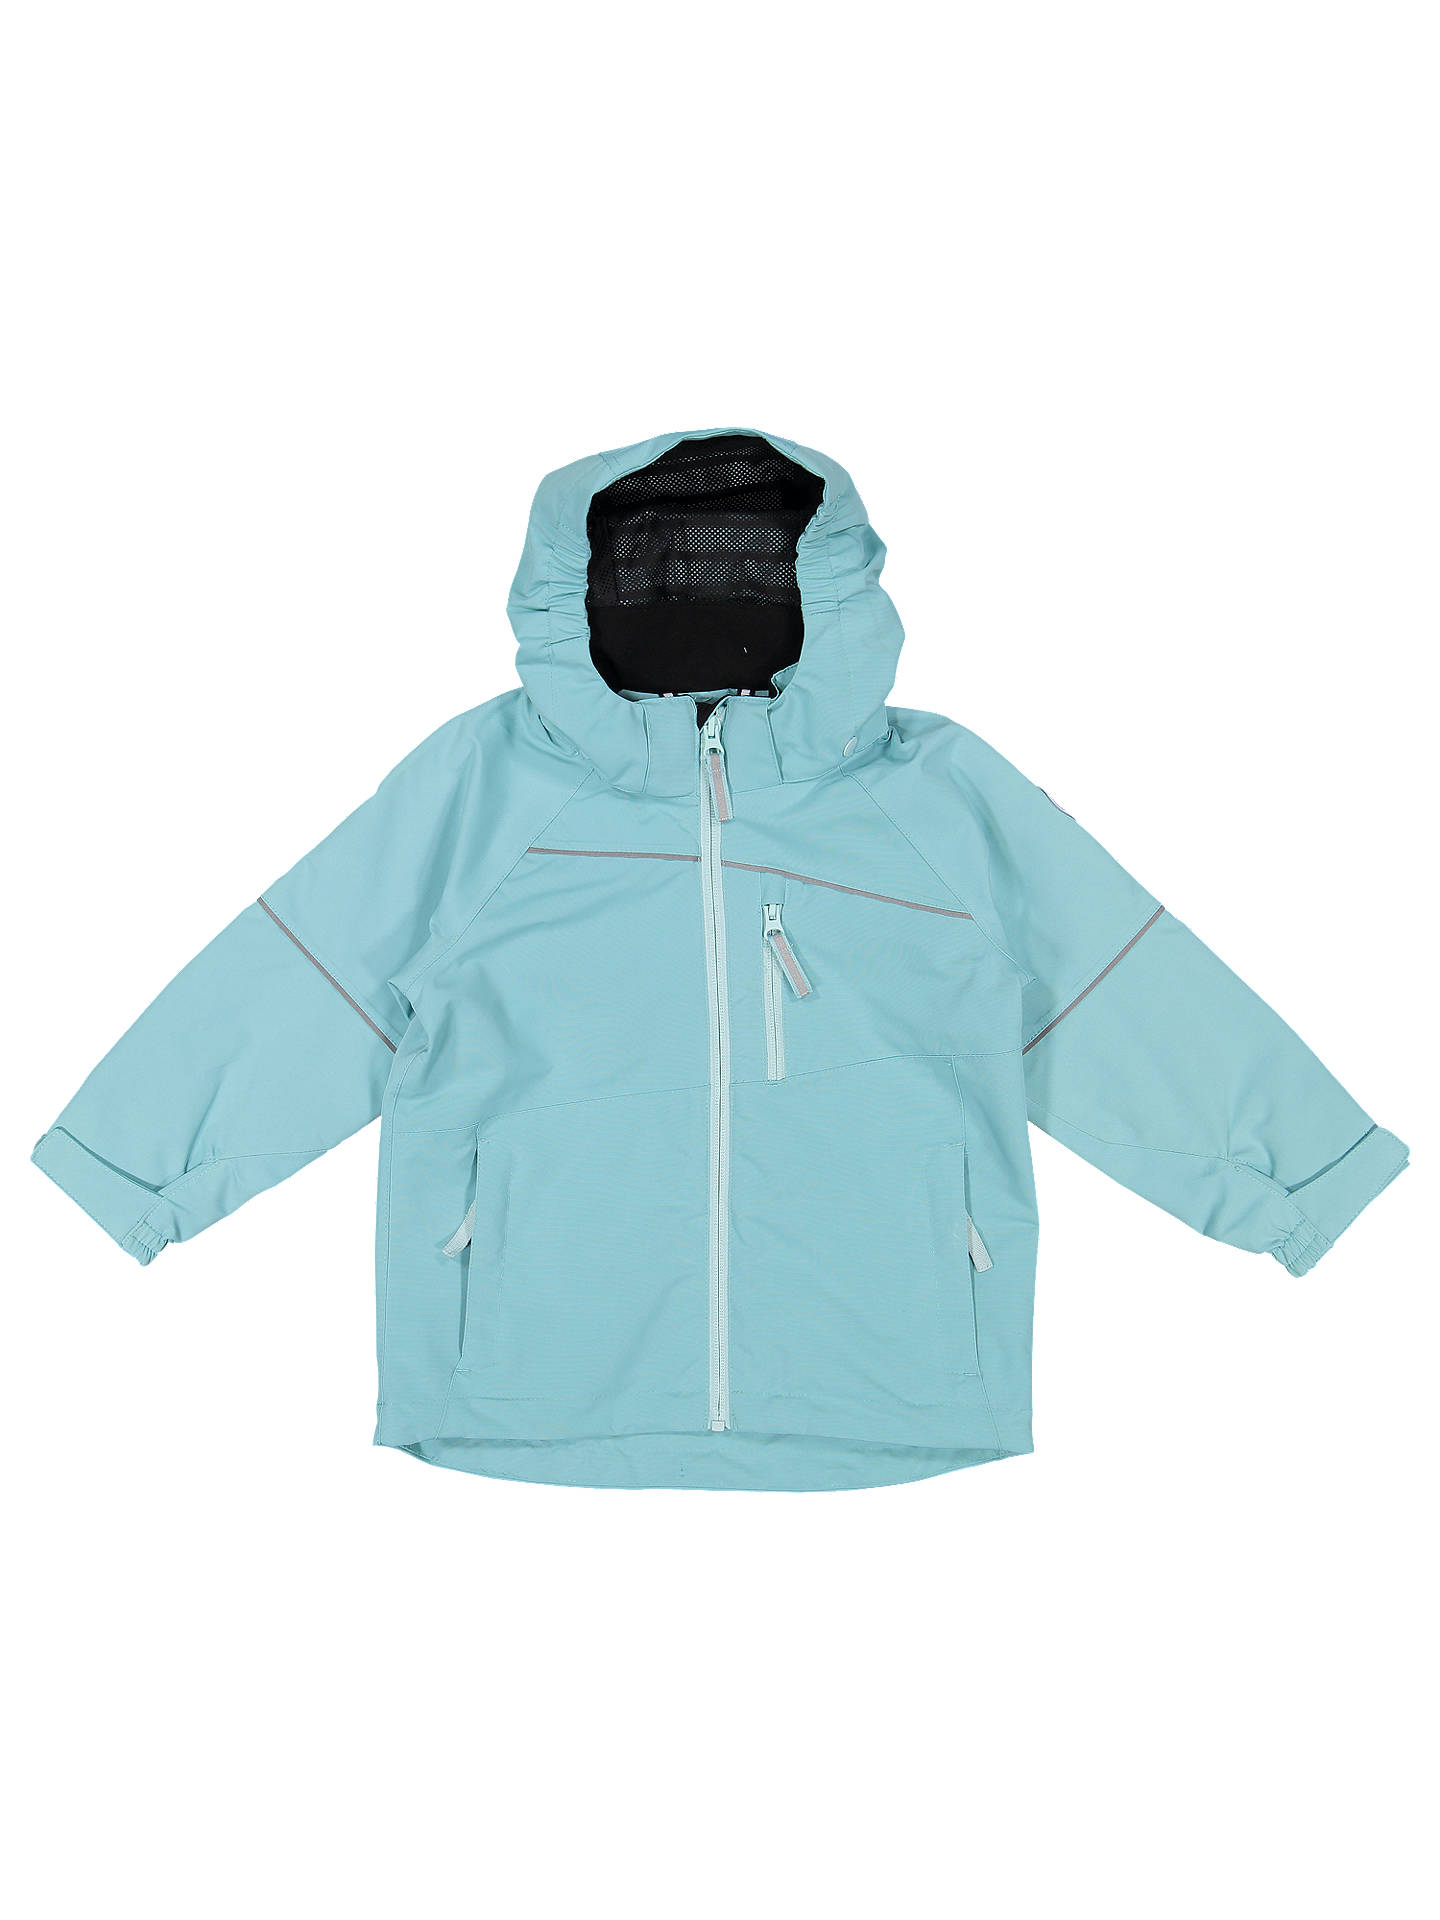 5c750acd2 Polarn O. Pyret Children s Shell Coat at John Lewis   Partners